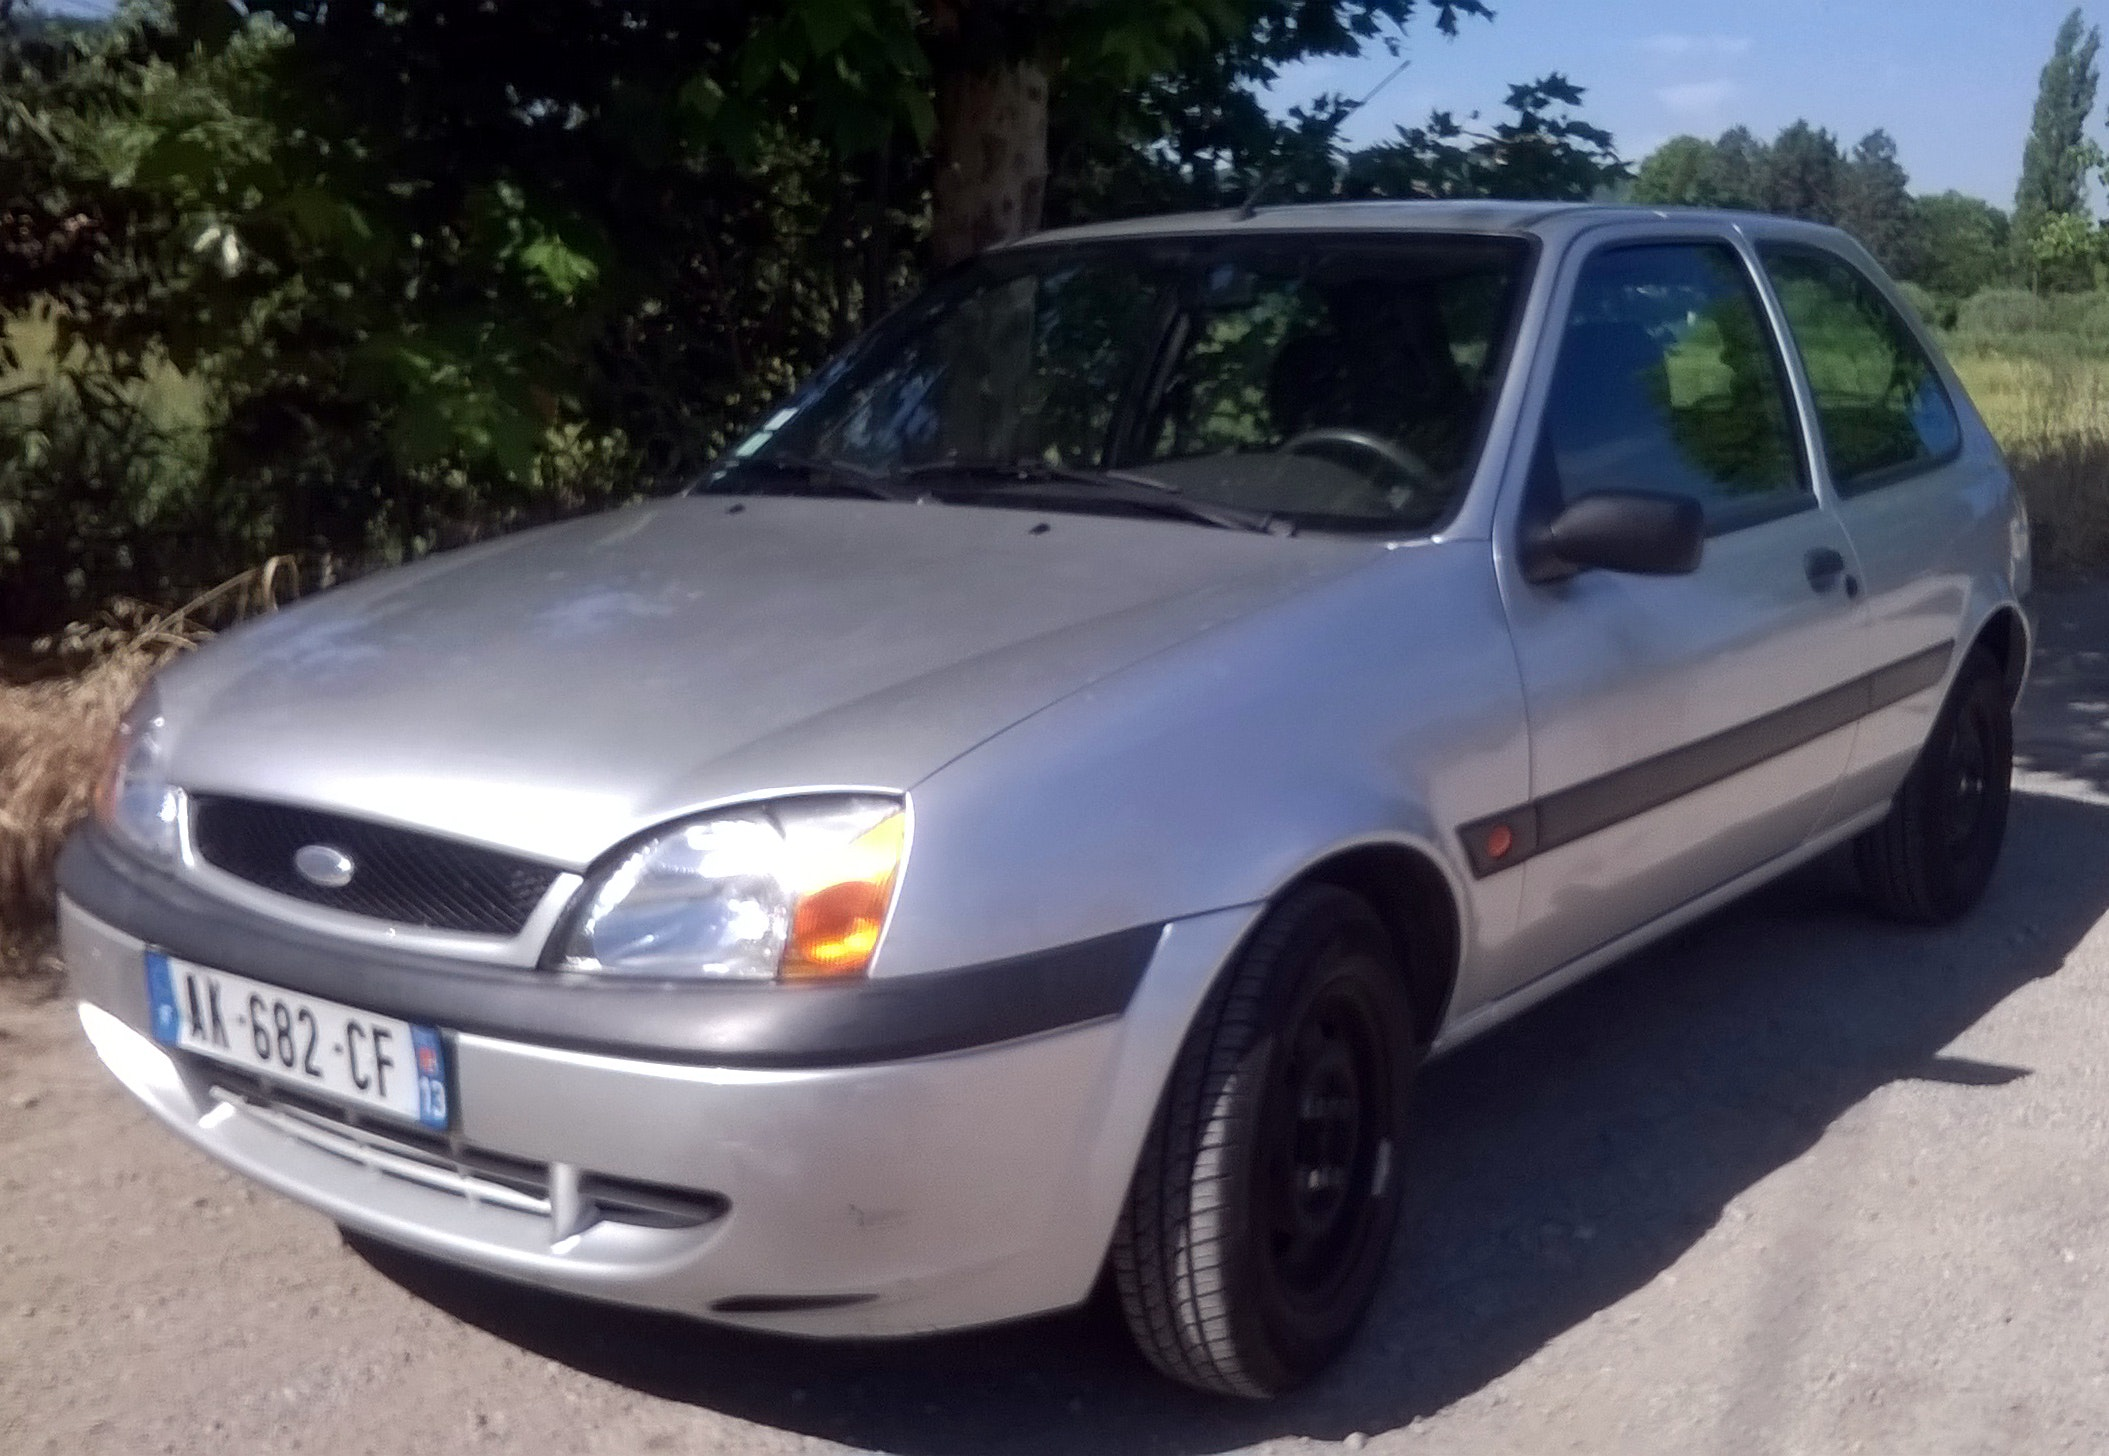 Ford Fiesta, 2001, Essence